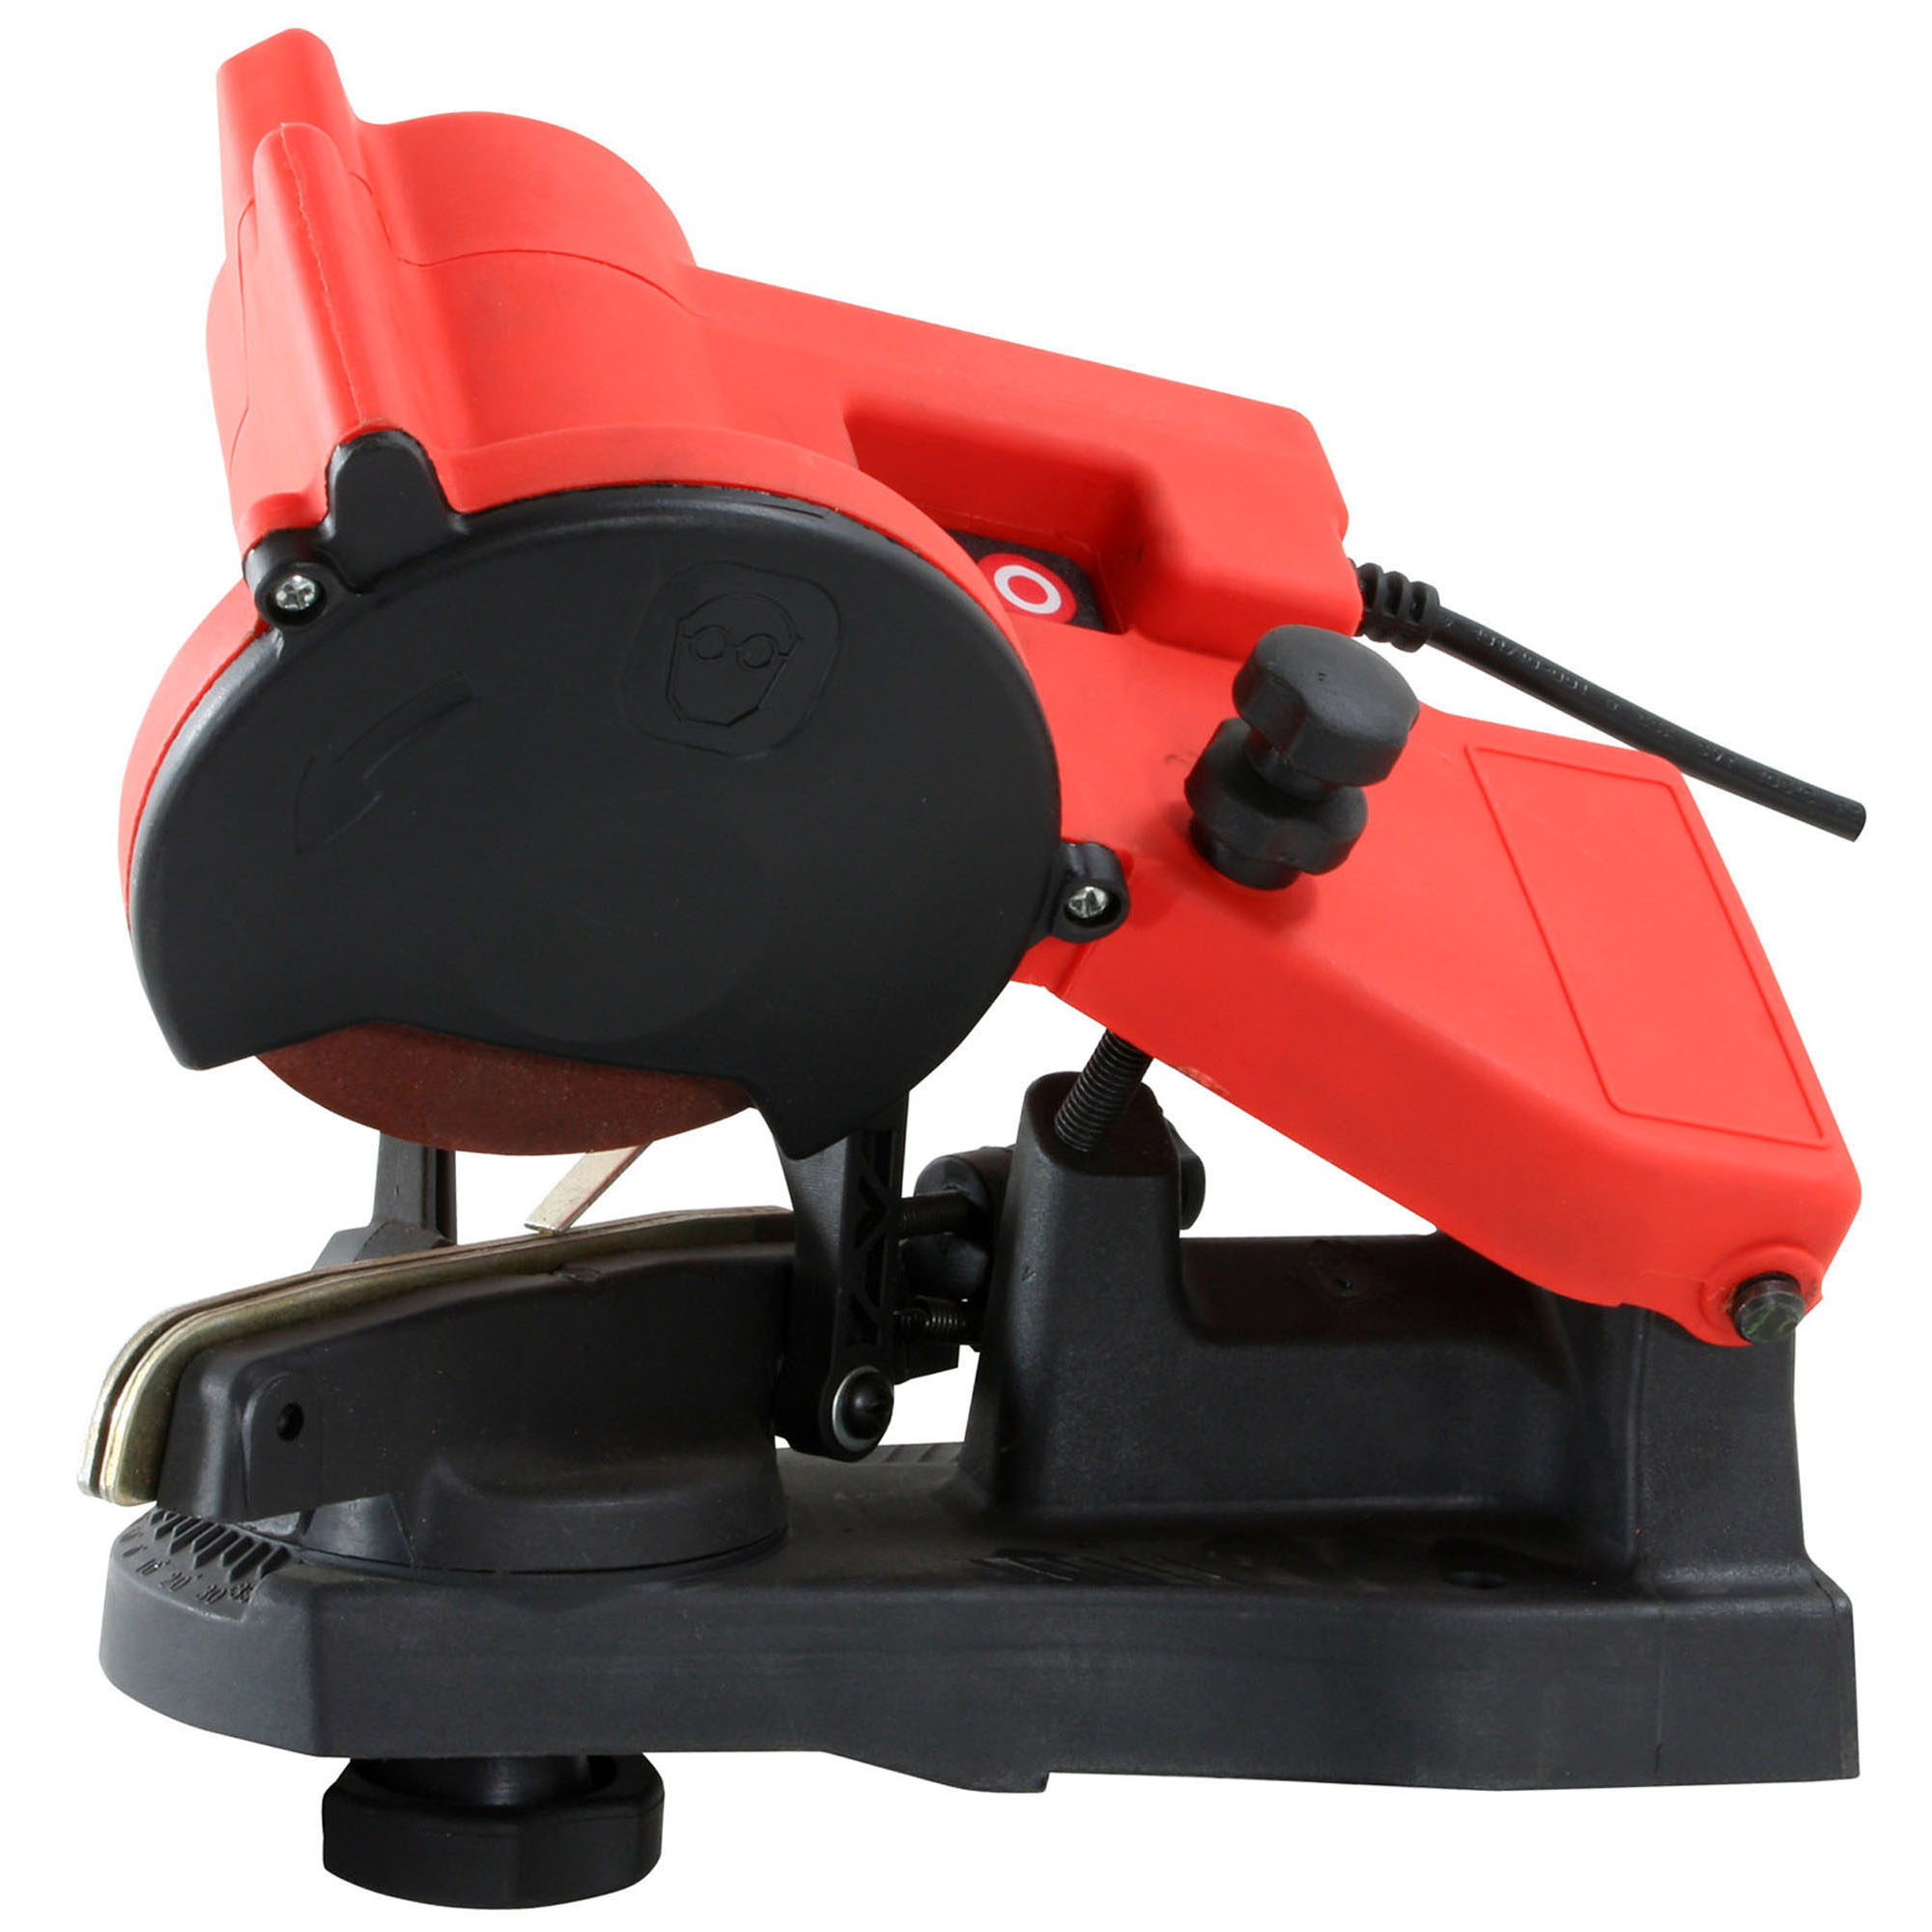 Mountable Electric Chain Saw Sharpener Tool Sharpen Adjustable Grind